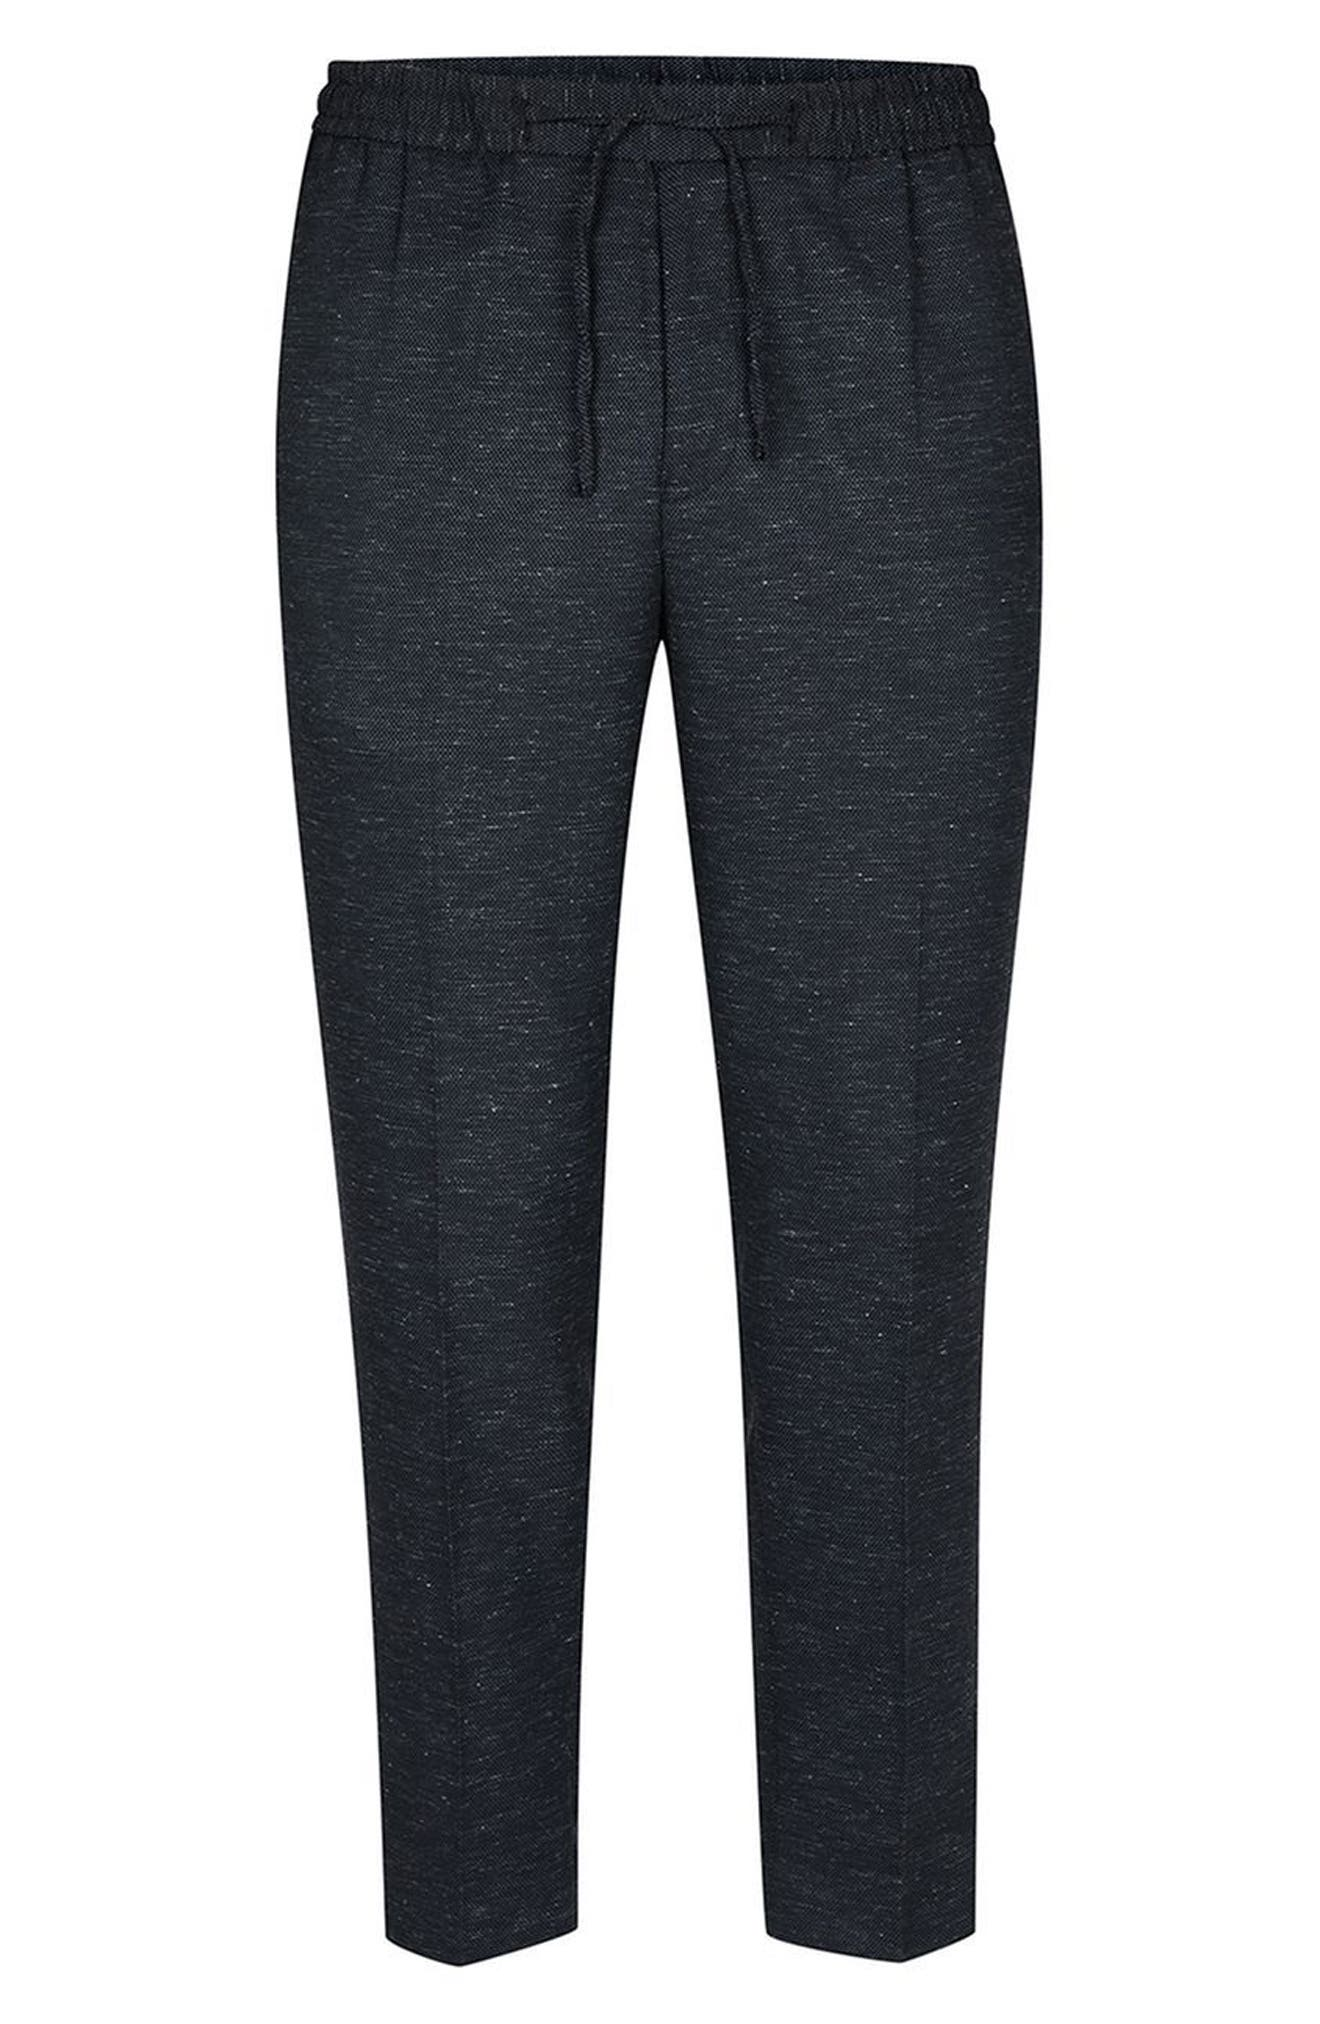 Romeo Flecked Jogger Pants,                             Alternate thumbnail 4, color,                             420